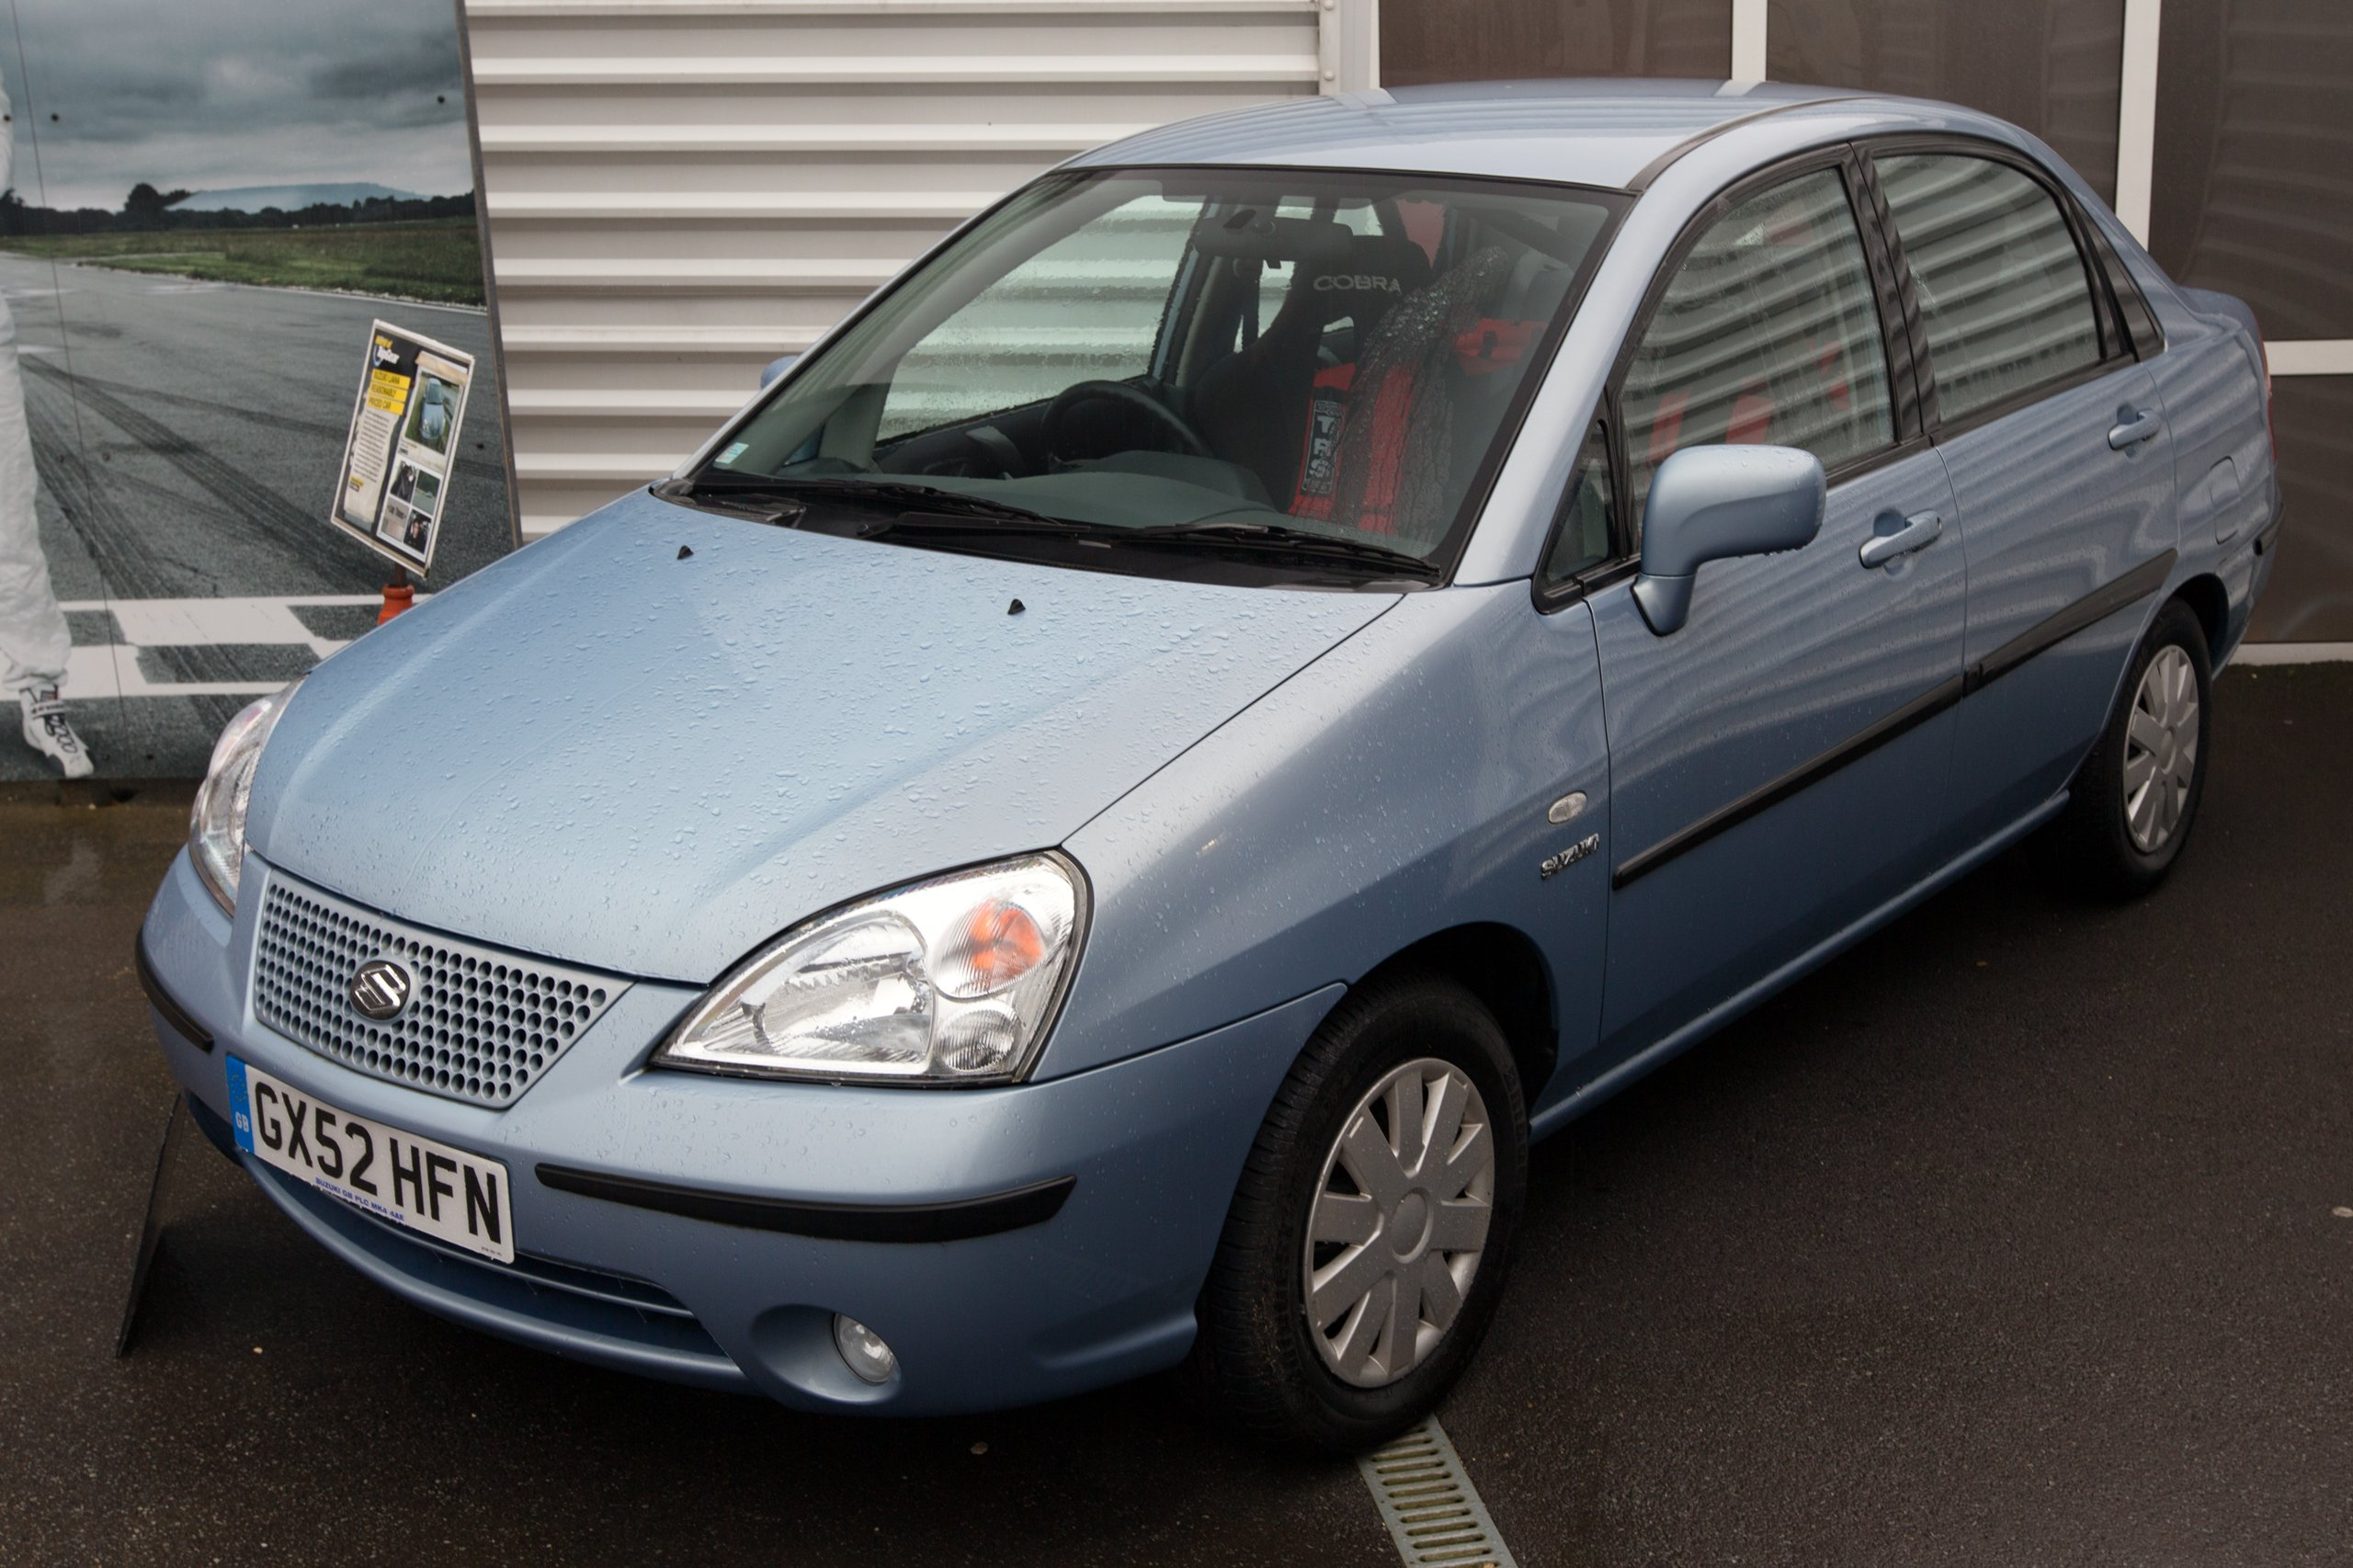 Star In A Reasonably Priced Car Times